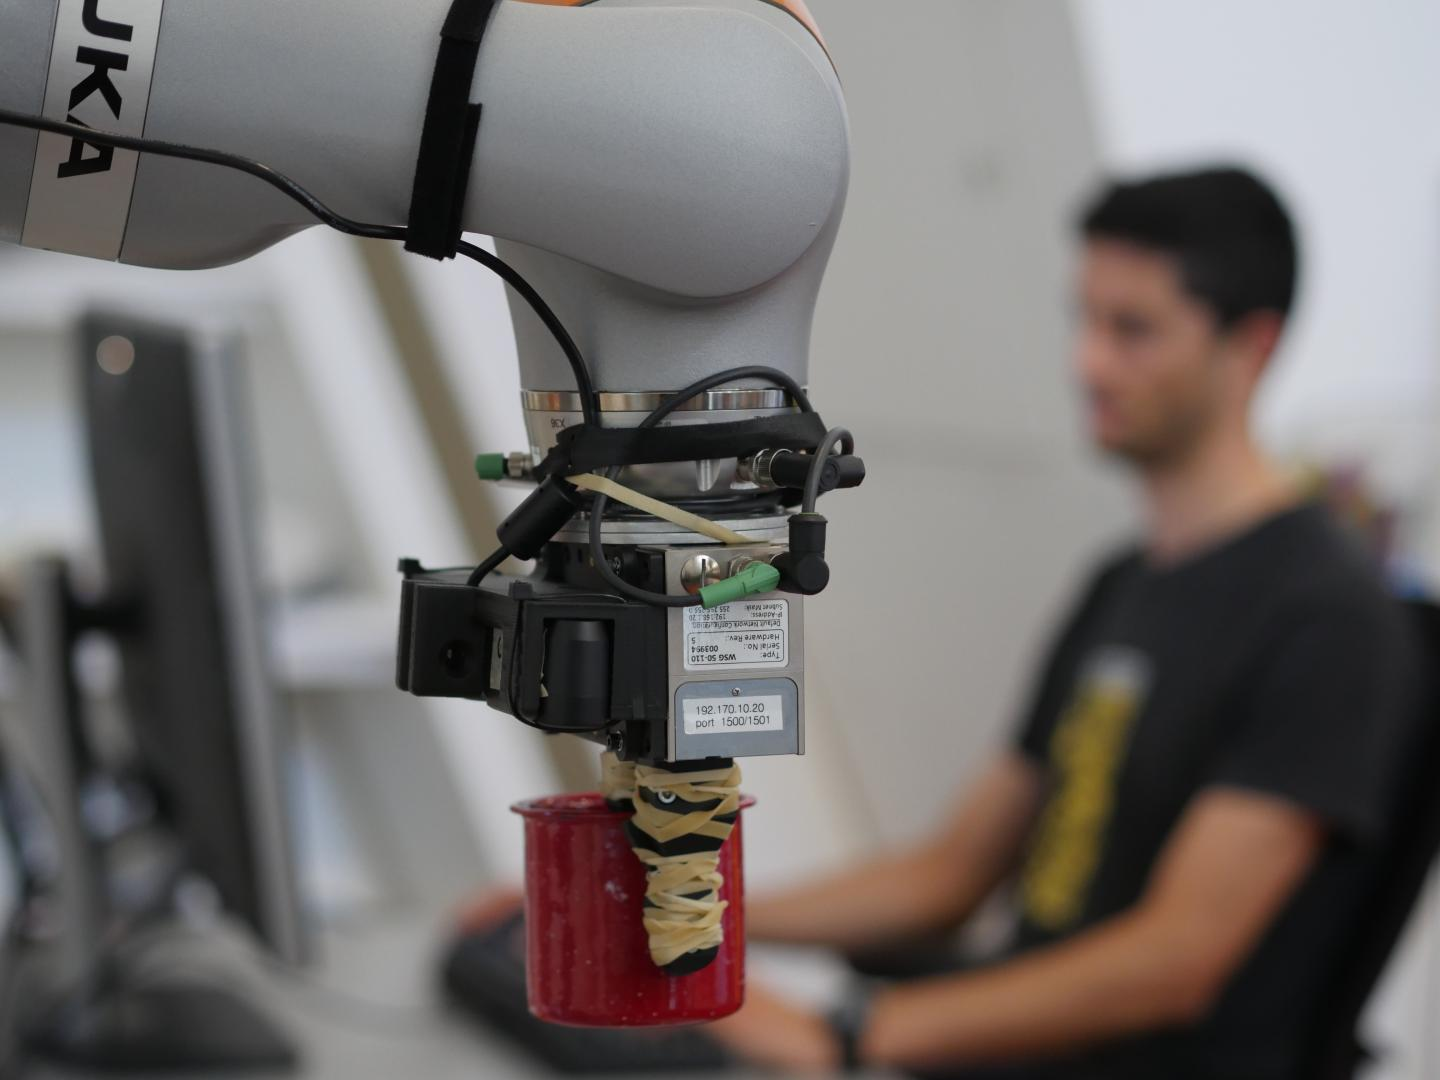 Lucas Manuelli With Robot and System